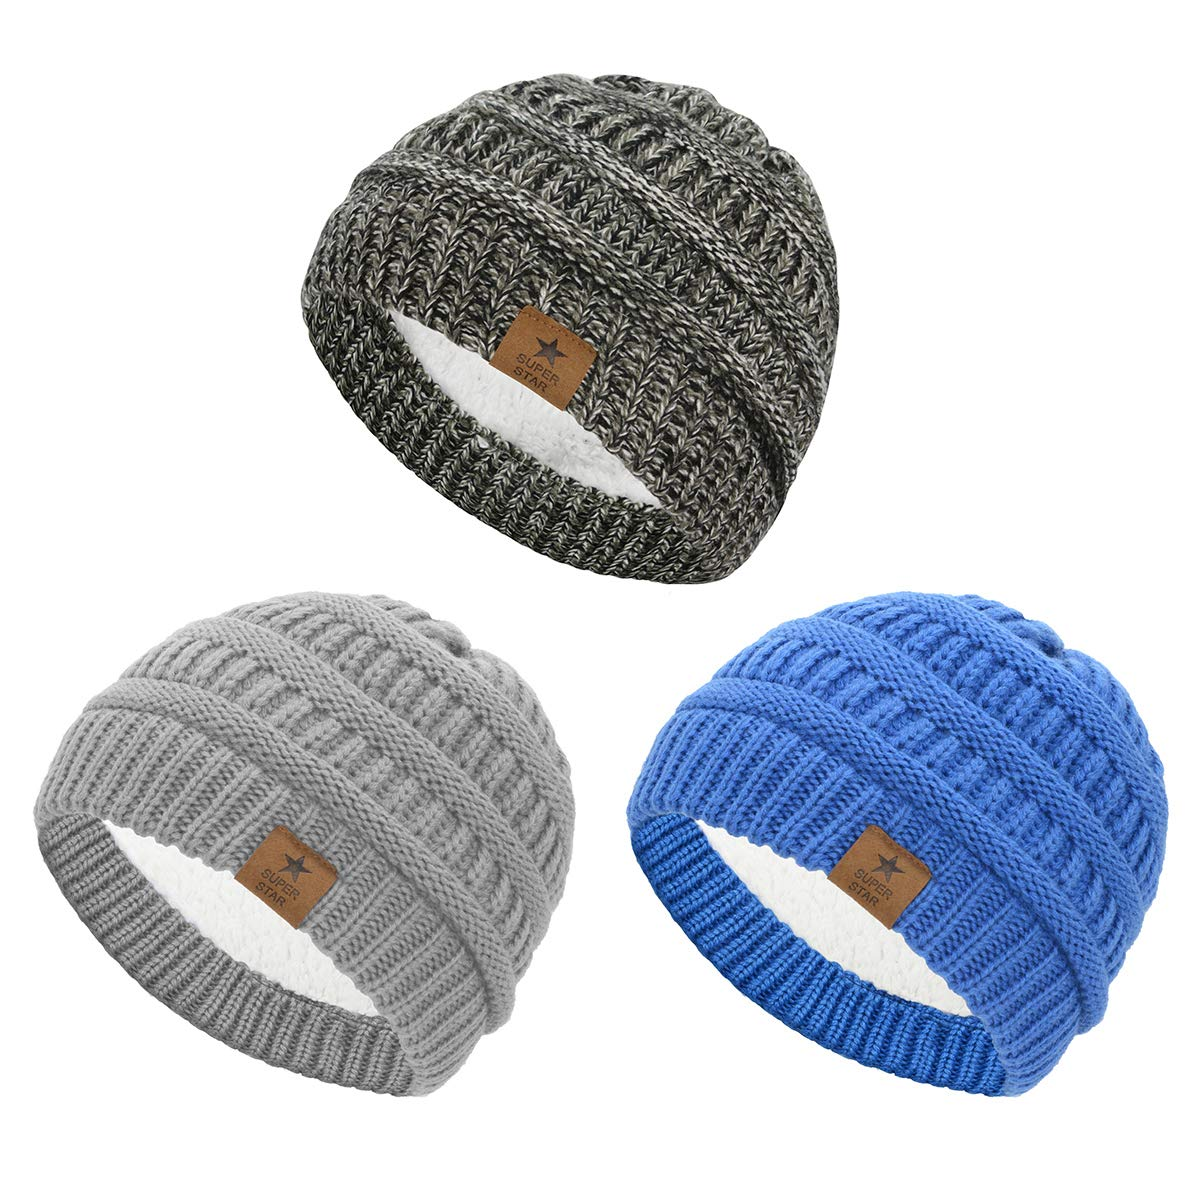 Durio Fleece Lined Soft Baby Boys Girls Infant Toddler Warm Thick Winter Hats Baby Beanies Babies Caps for 0-2 years 3 Pack Black White & Light Grey & Blue